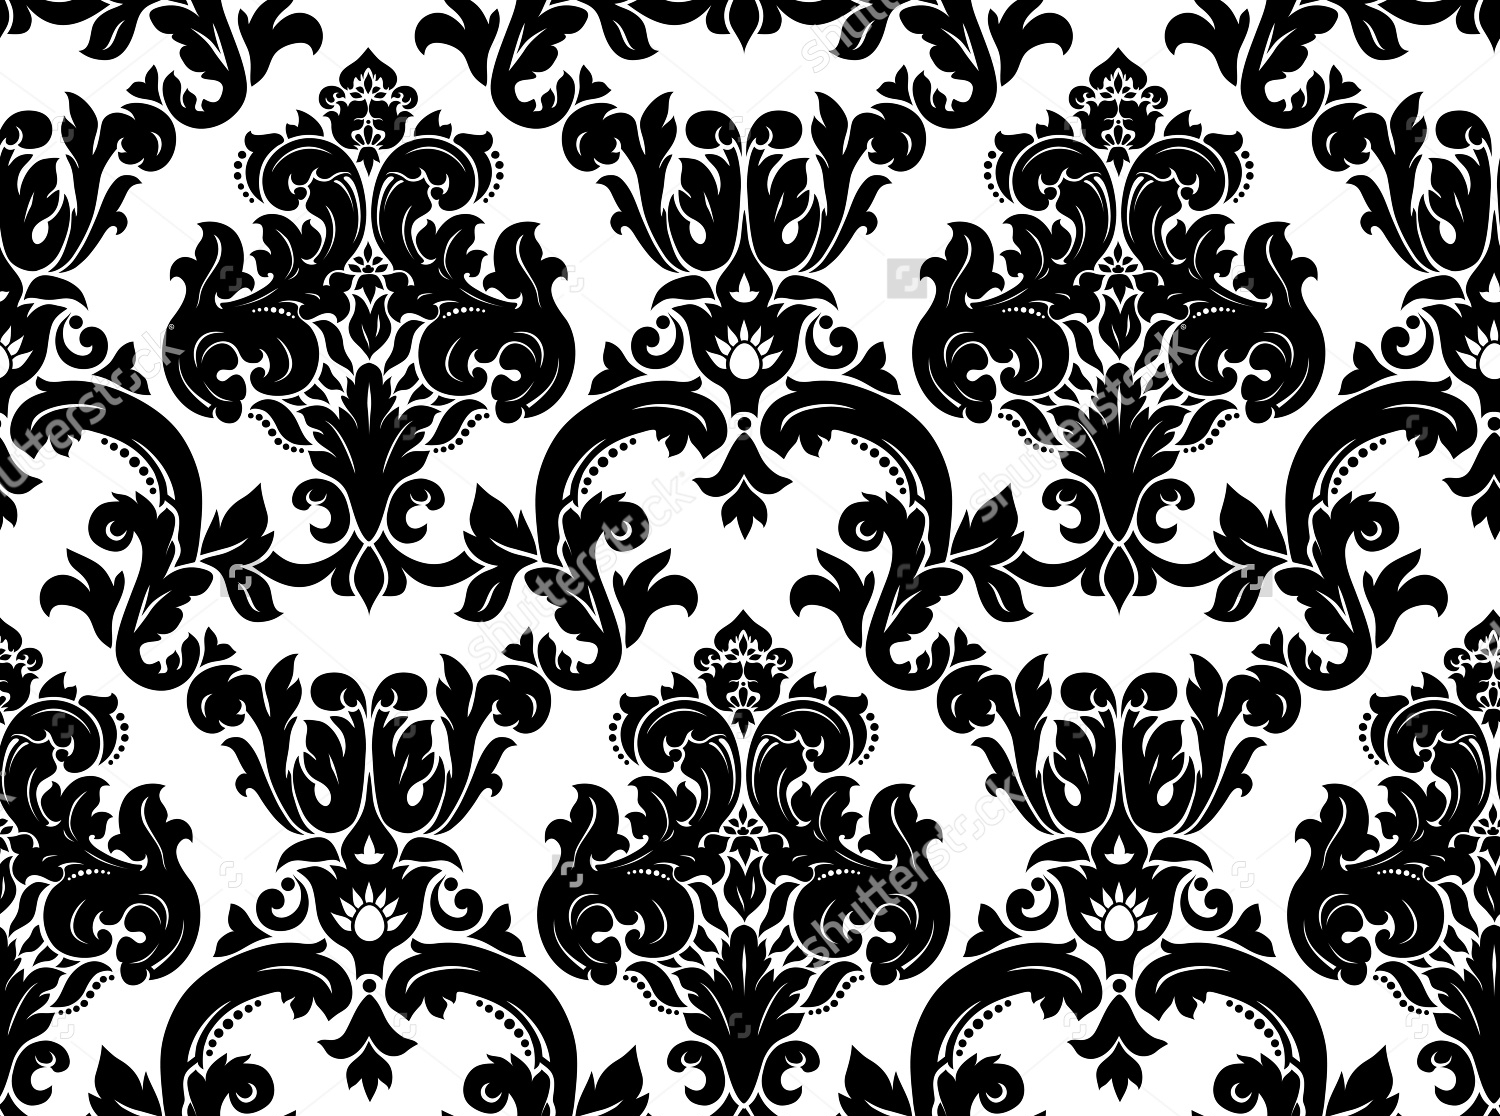 Black and White Damask background